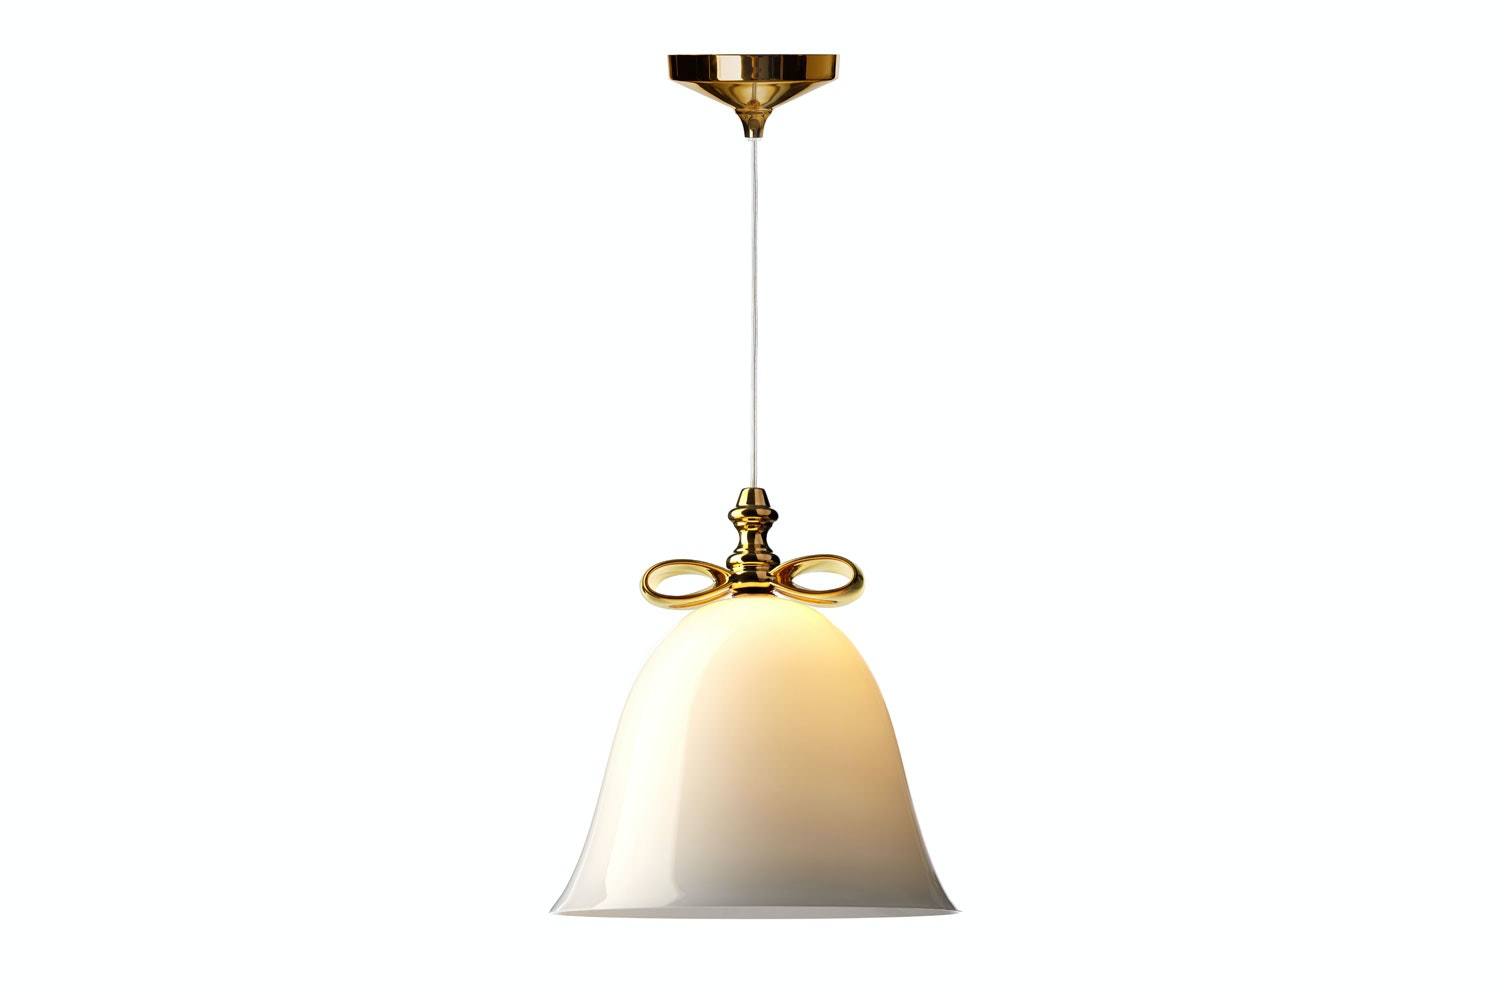 Bell Lamp by Marcel Wanders for Moooi